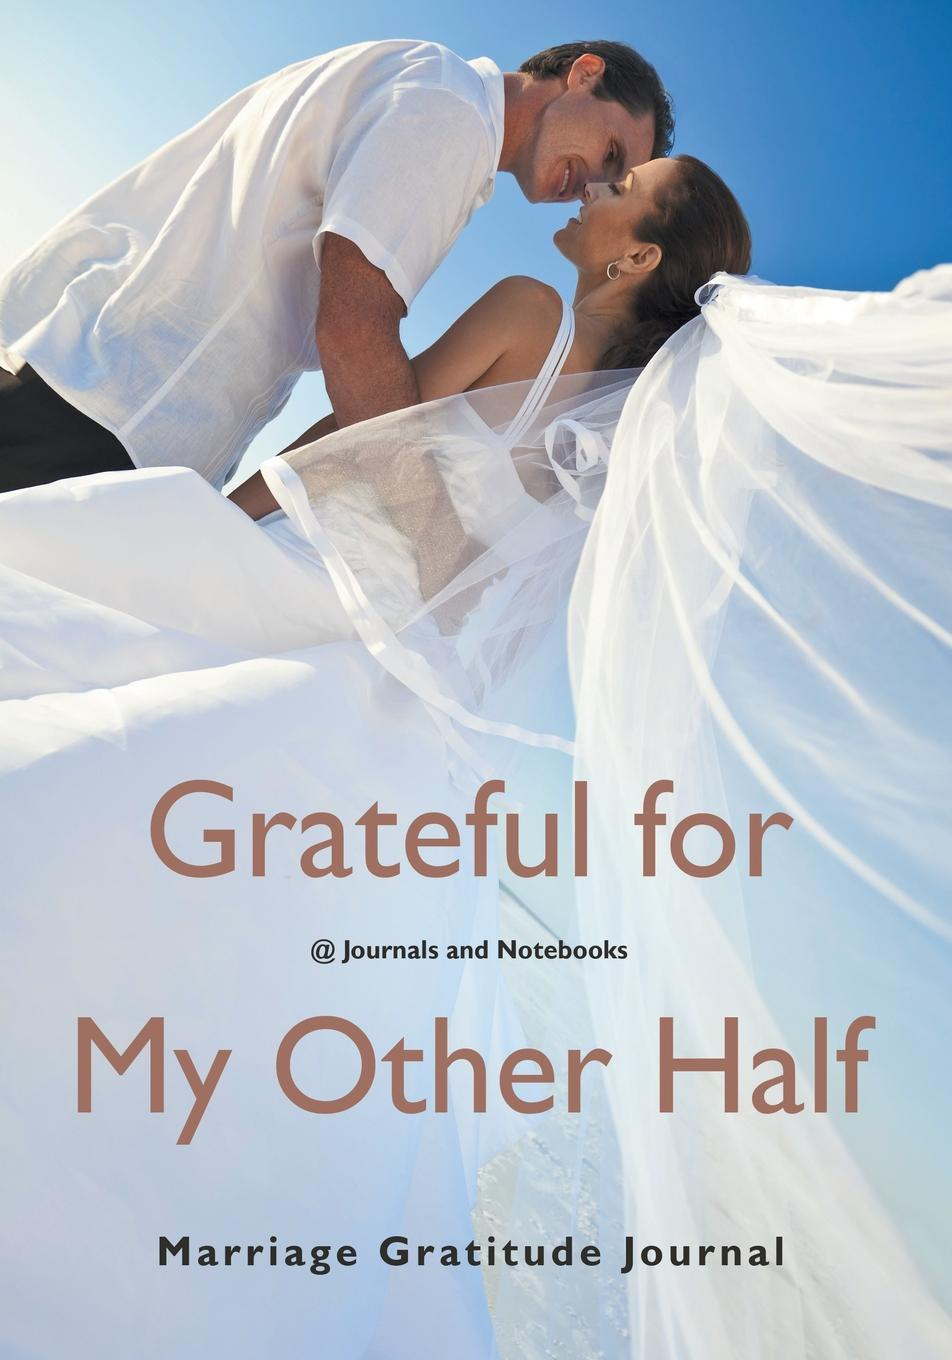 @ Journals and Notebooks Grateful for My Other Half - Marriage Gratitude Journal